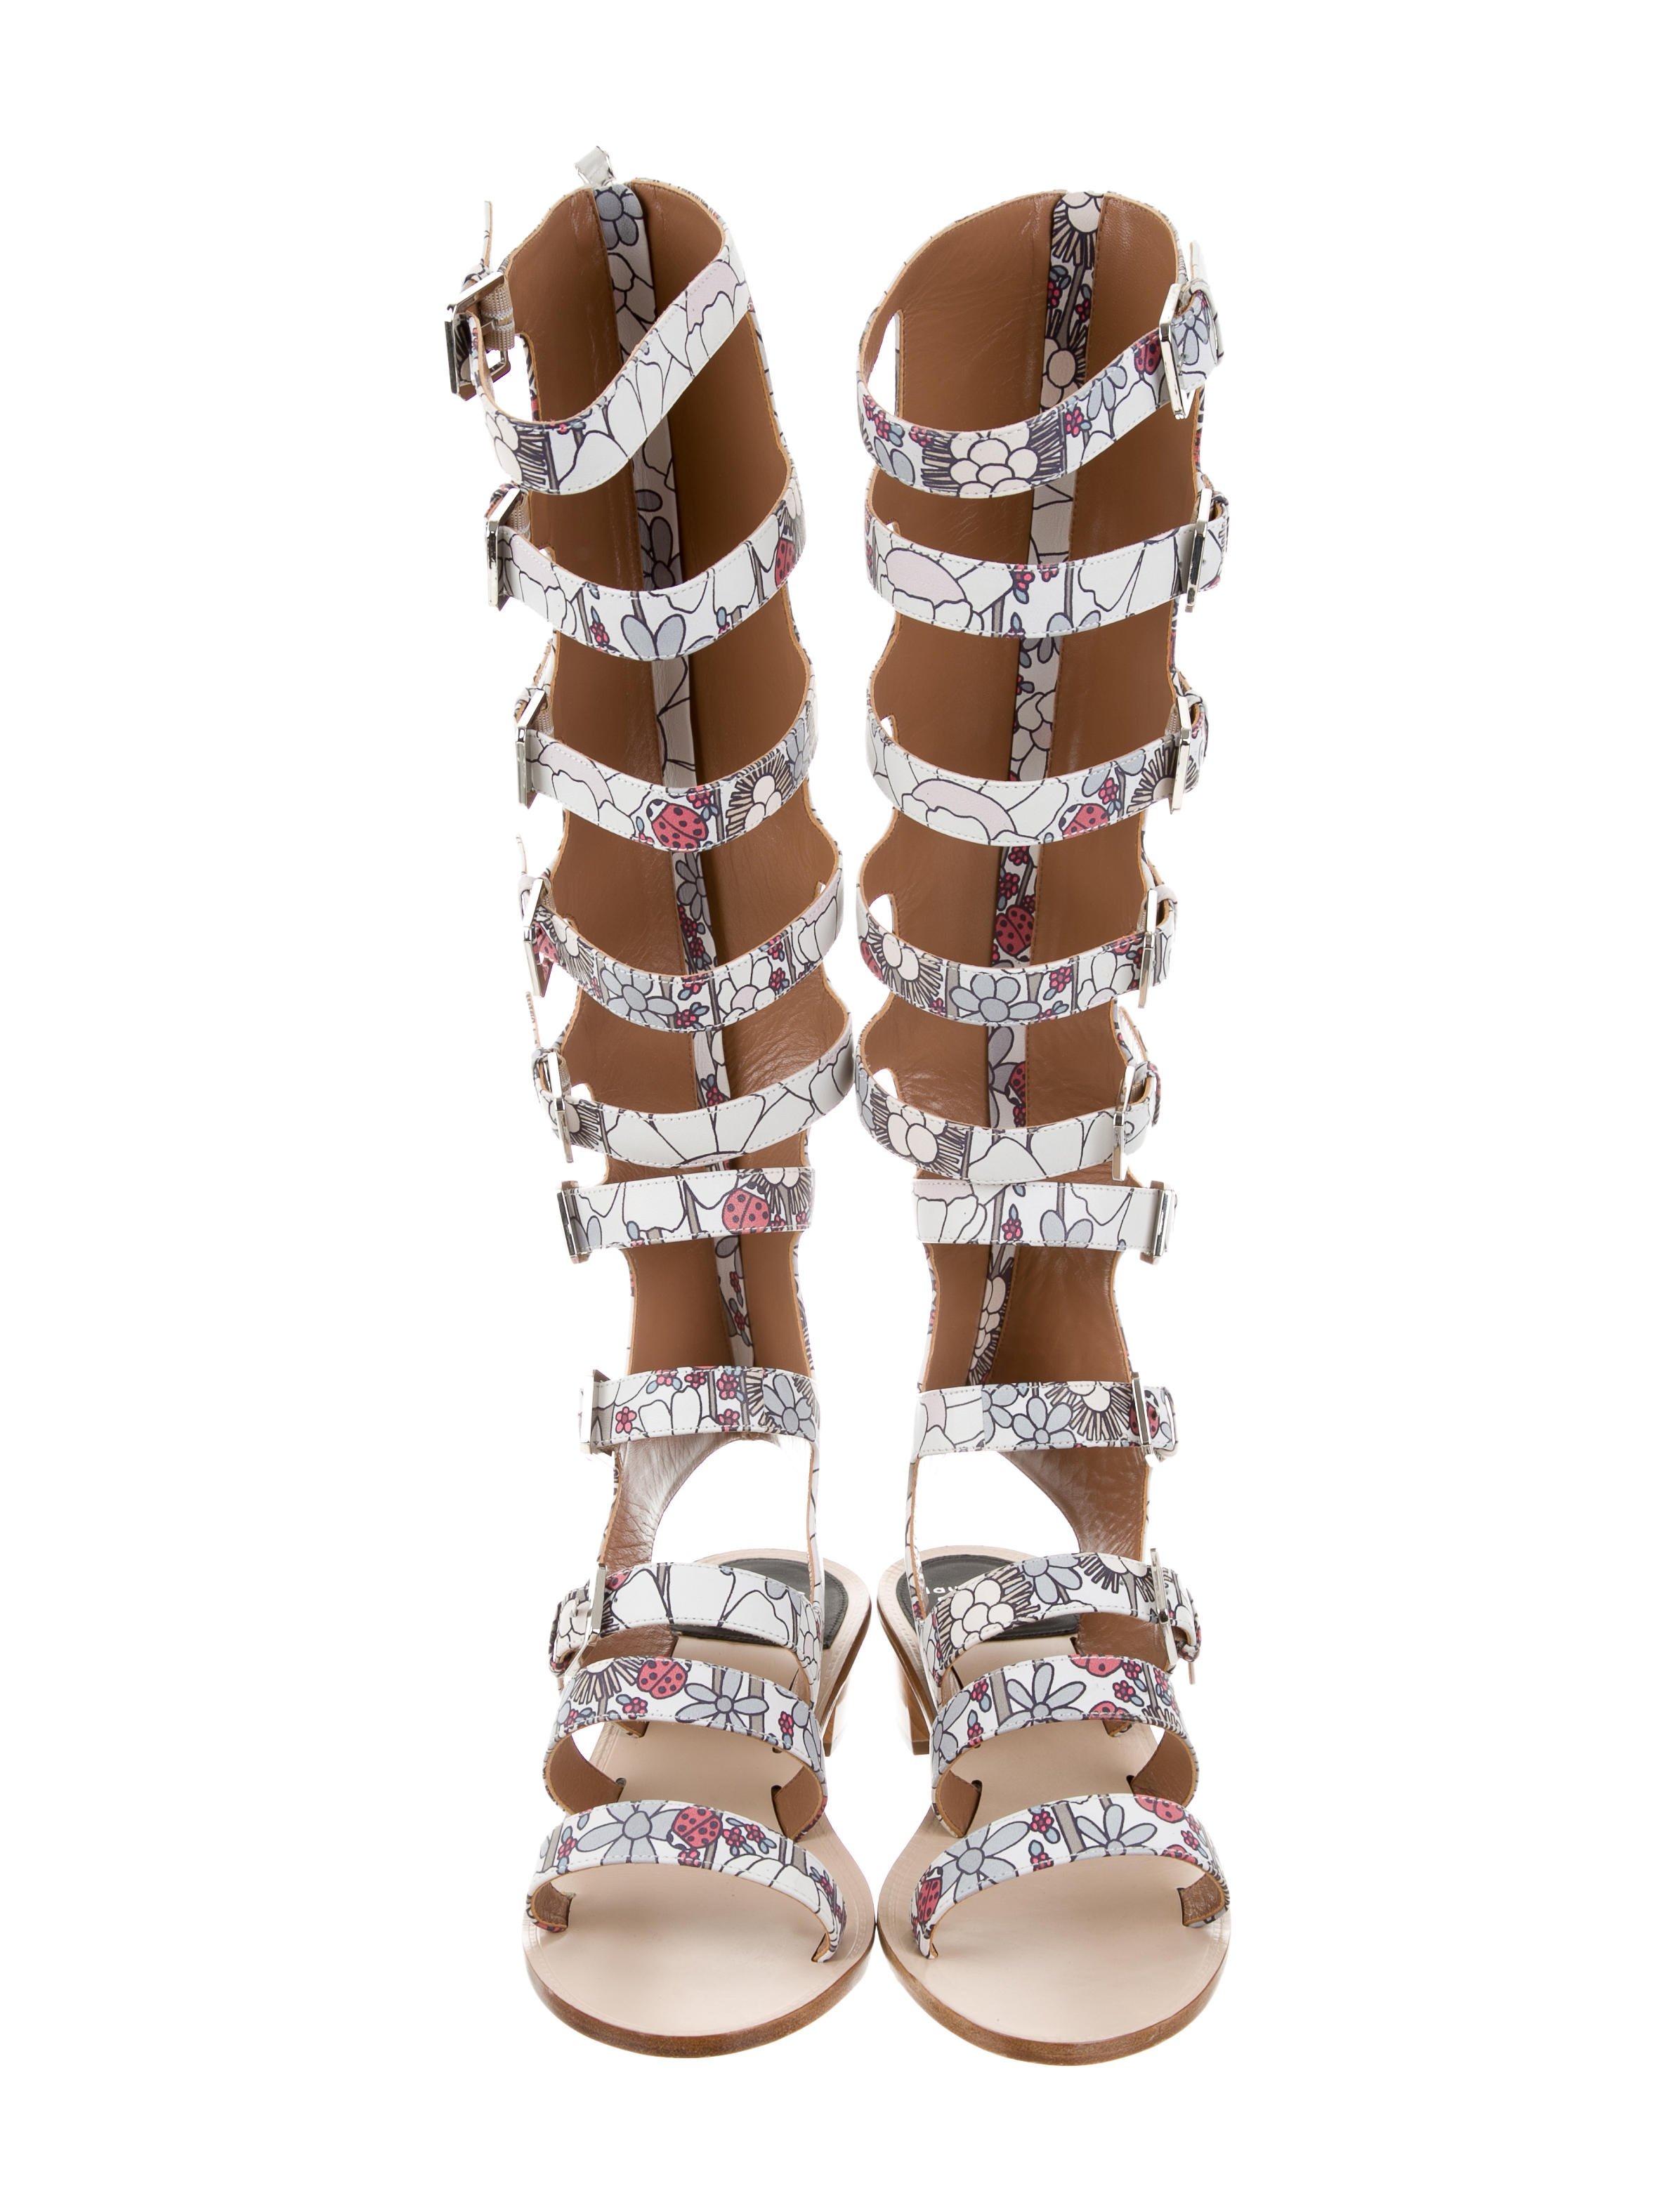 Laurence-Dacade-Halle-Gladiator-Sandal-41-11-Leather-Flat-Shoe-Boot-Designer_7705B.jpg